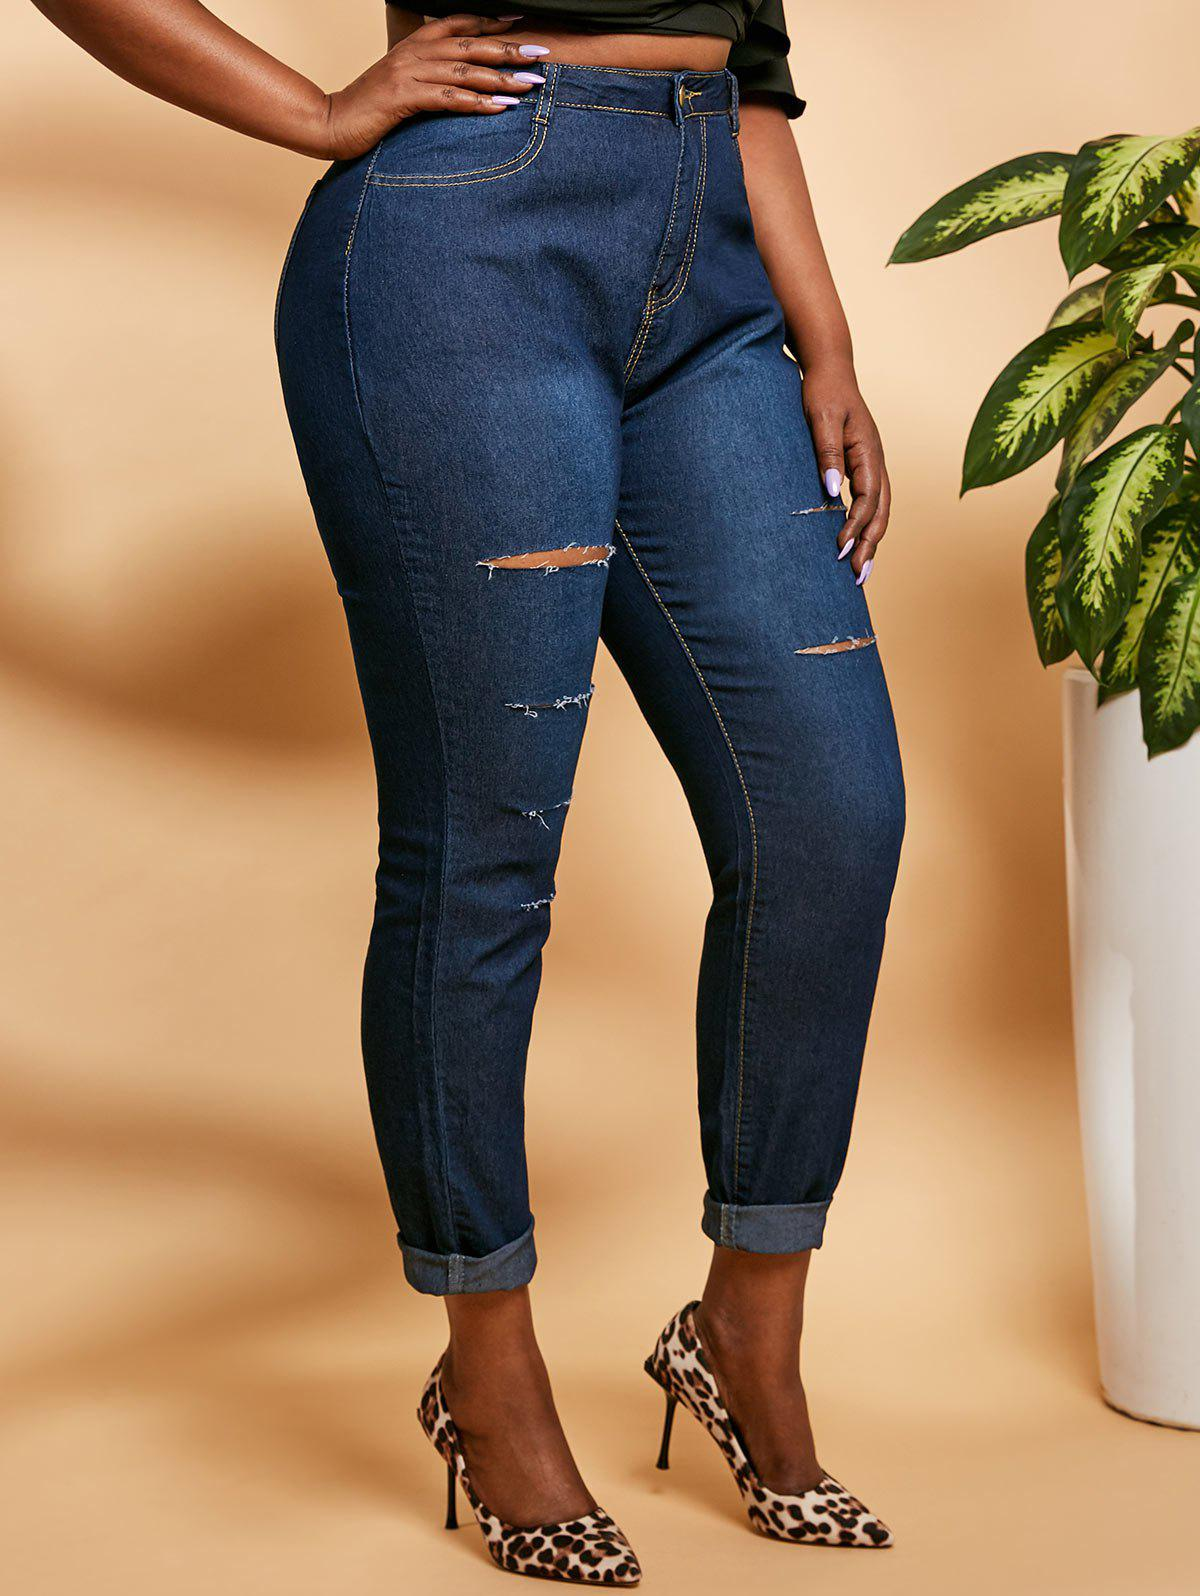 Ladder Ripped Mid Rise Plus Size Skinny Jeans - DEEP BLUE 5XL